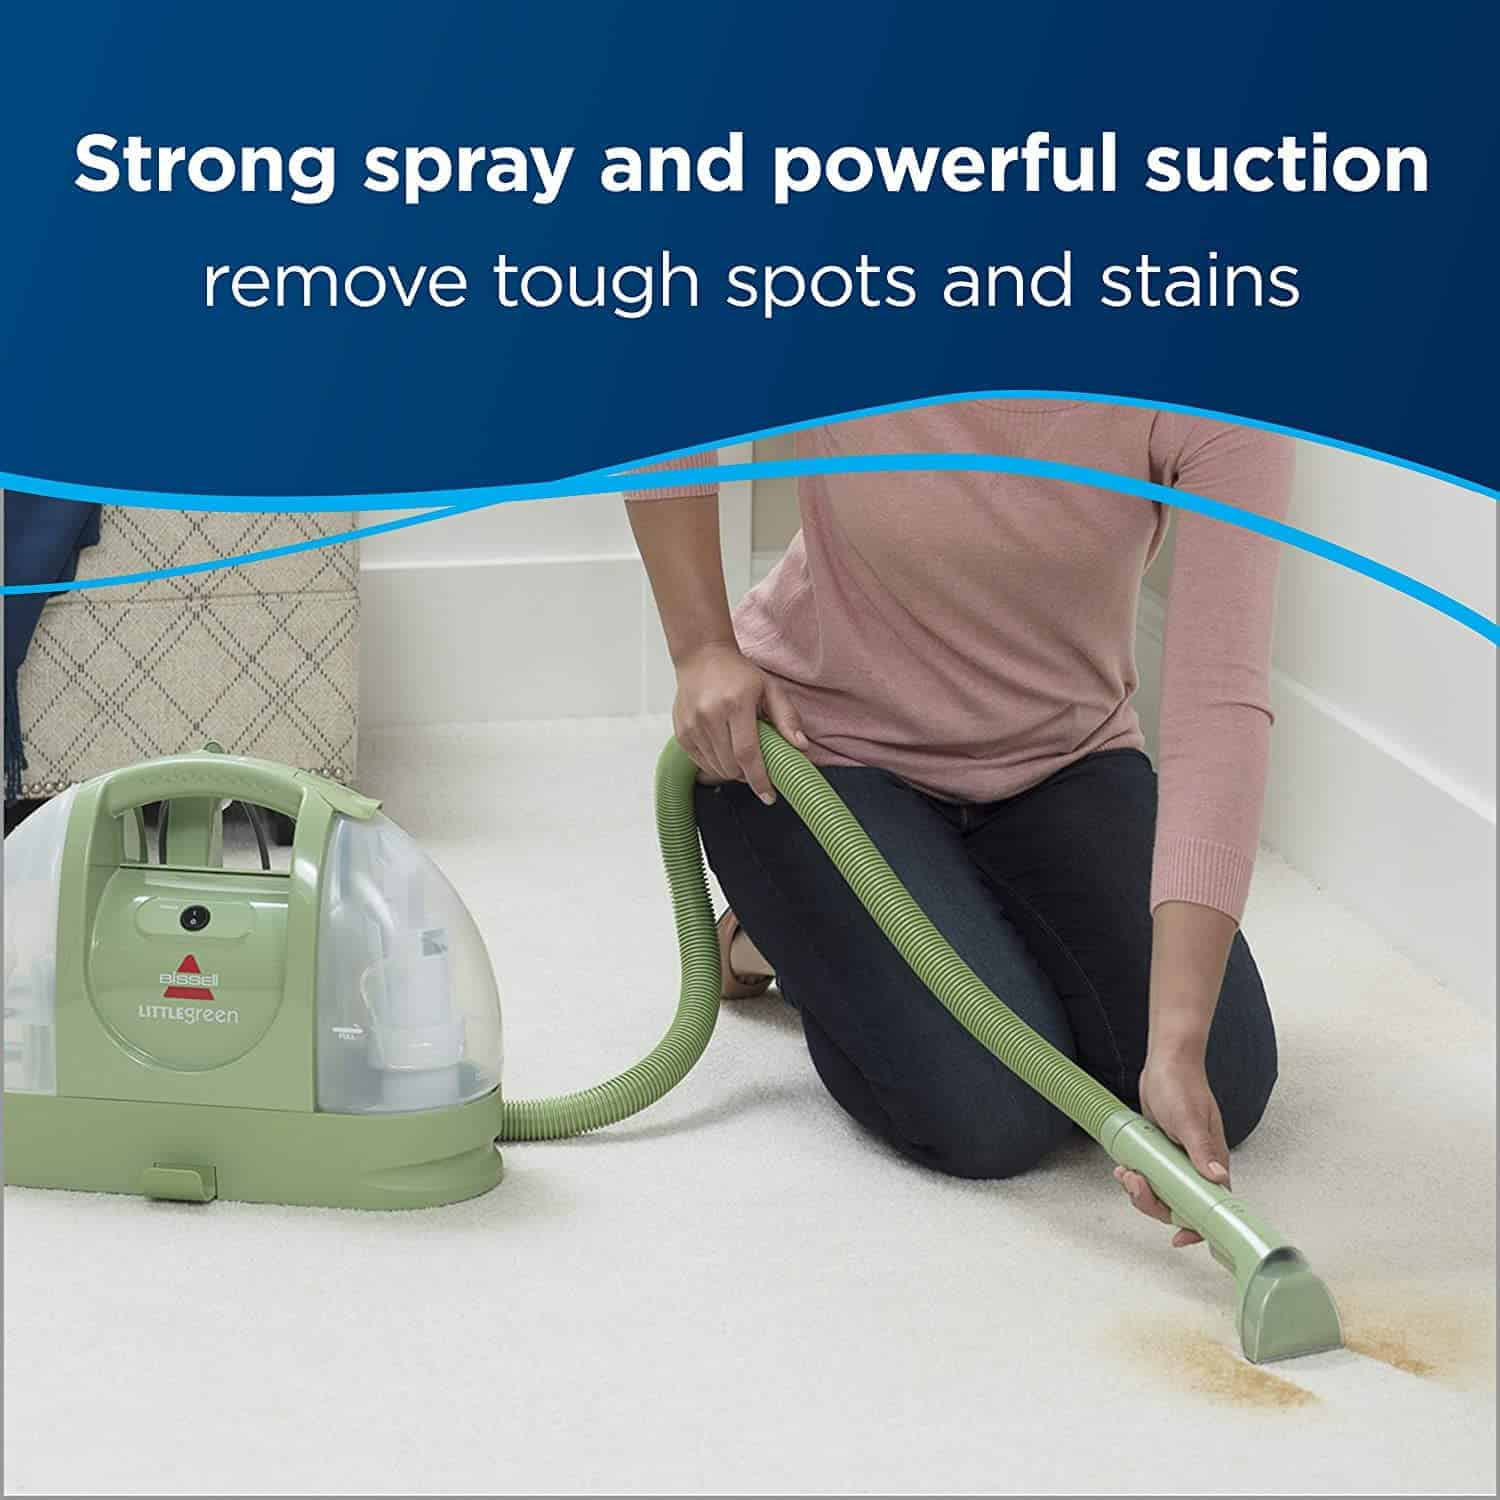 Top-quality best rated portable carpet cleaner: Bissell 1400B